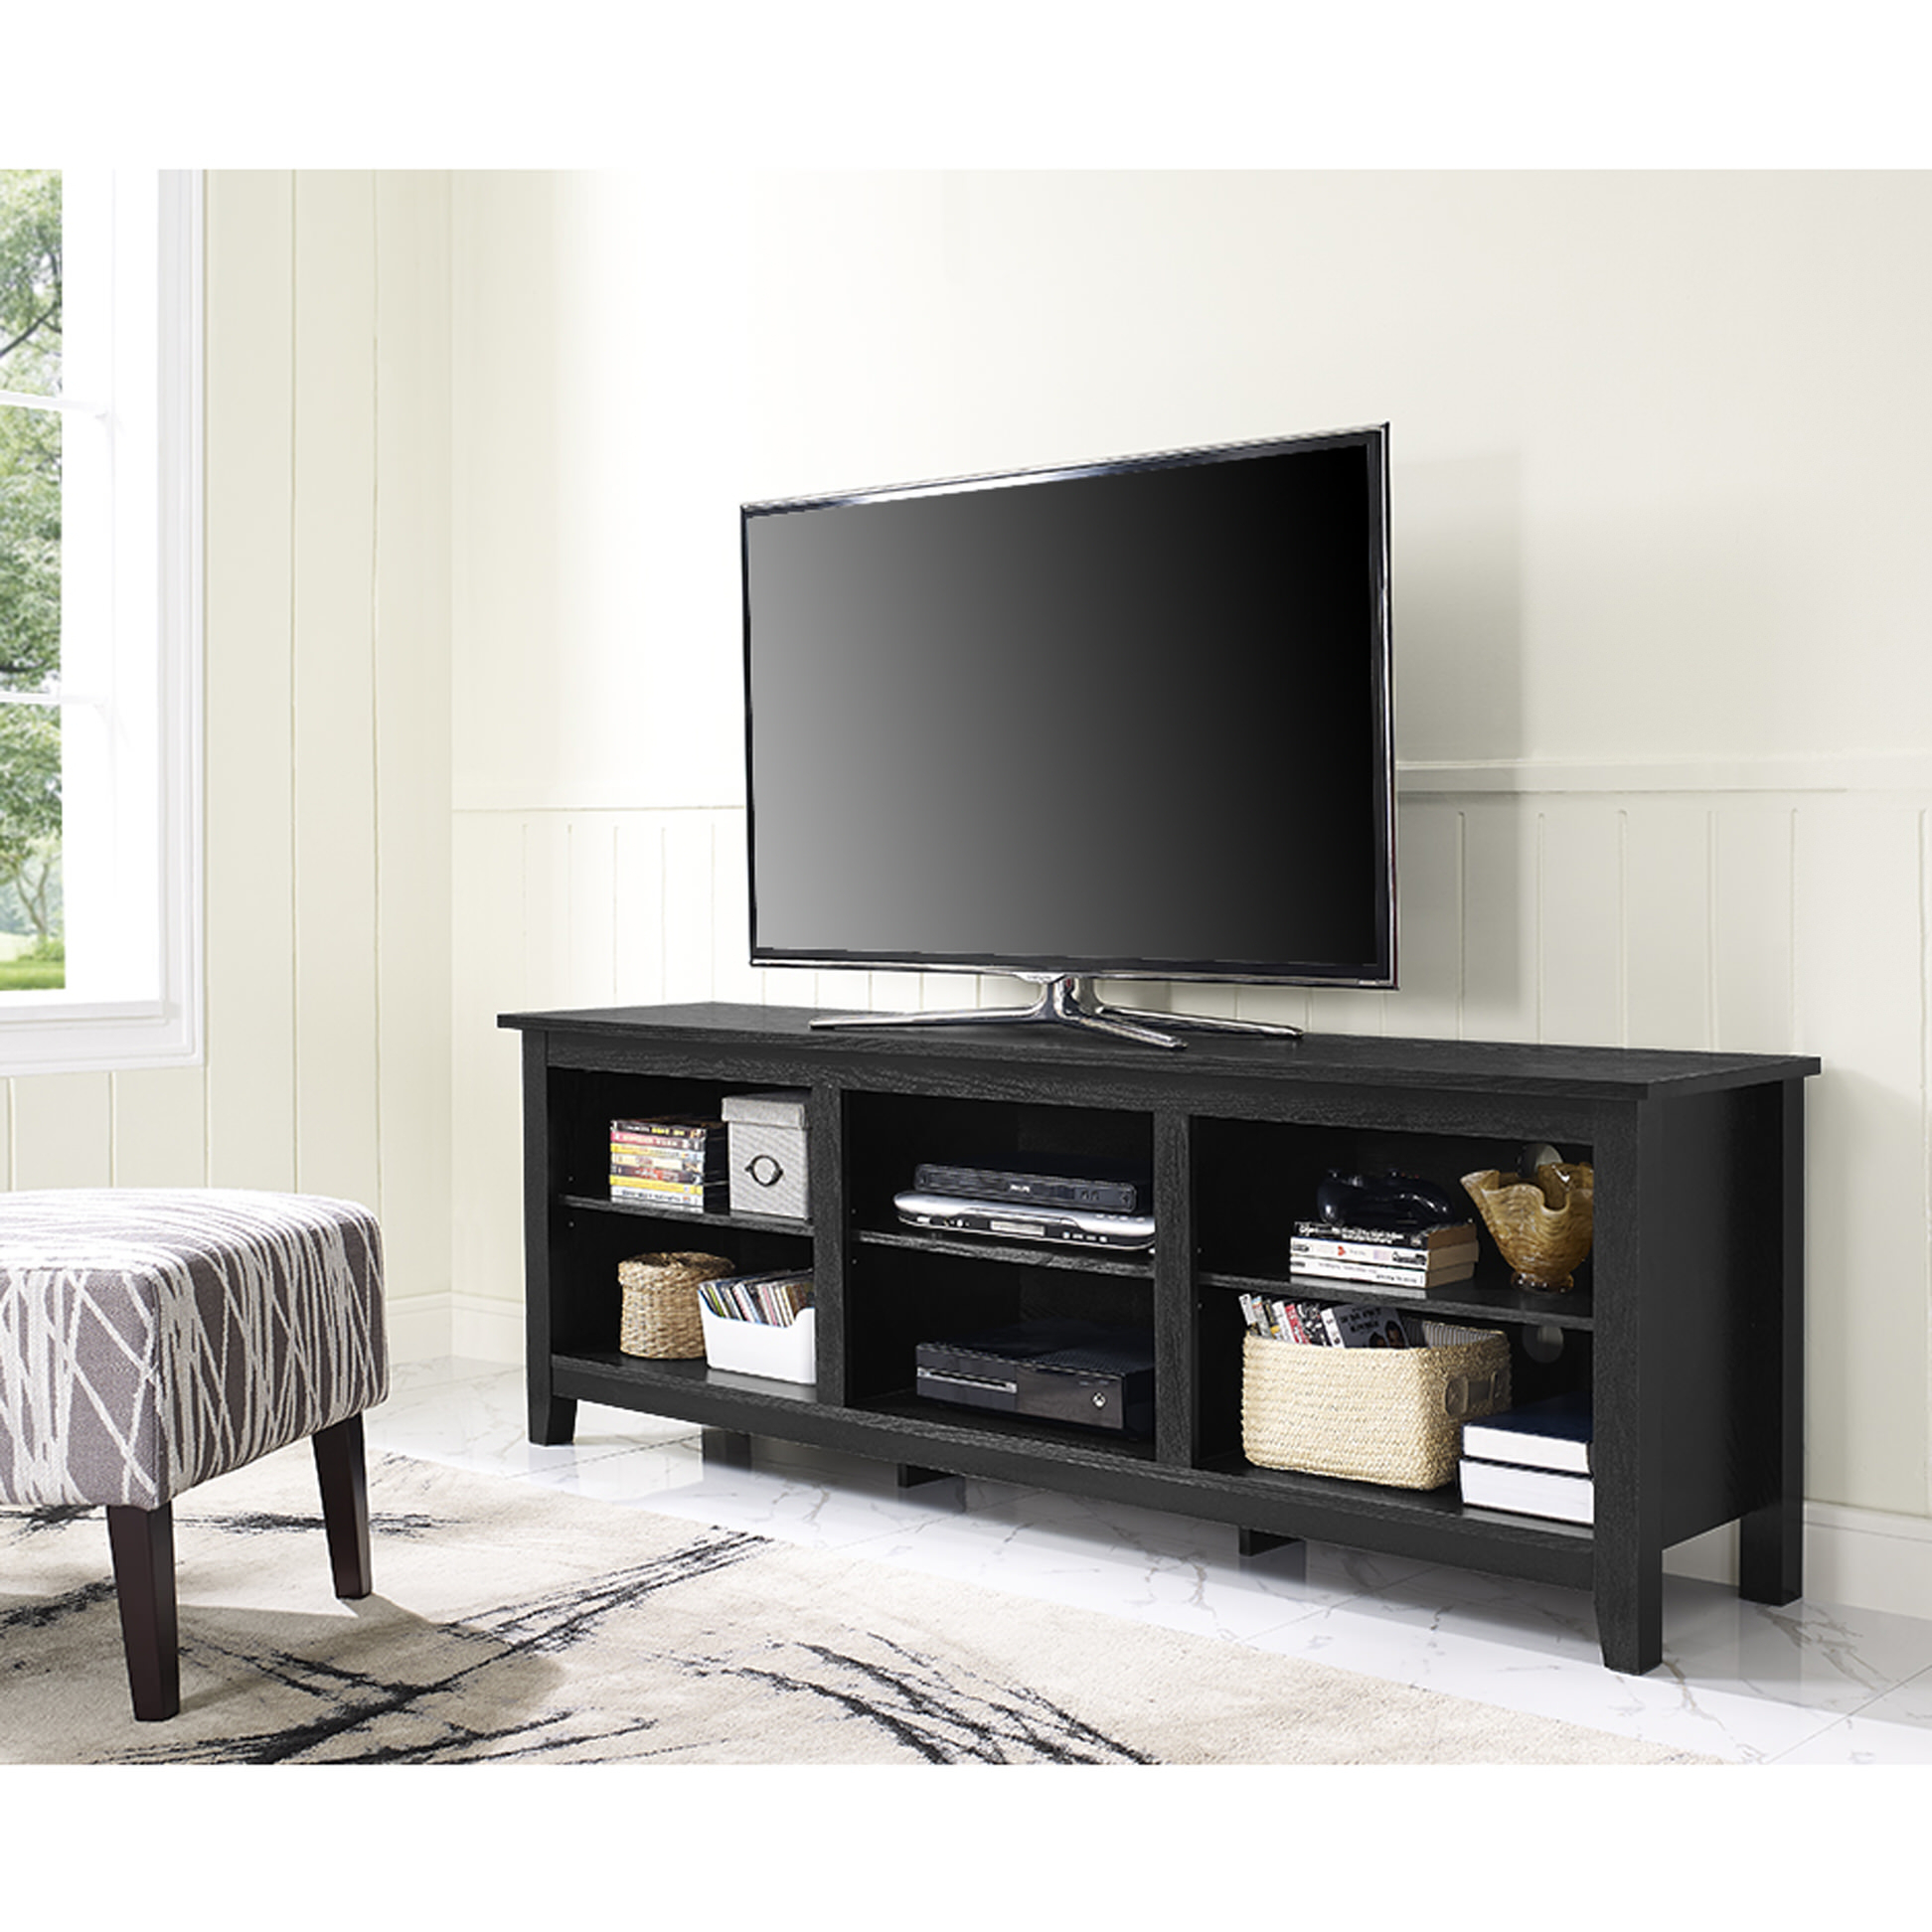 Tv Stand For 70 Inch Tv #876679732 — Selfpub For Annabelle Cream 70 Inch Tv Stands (View 22 of 30)